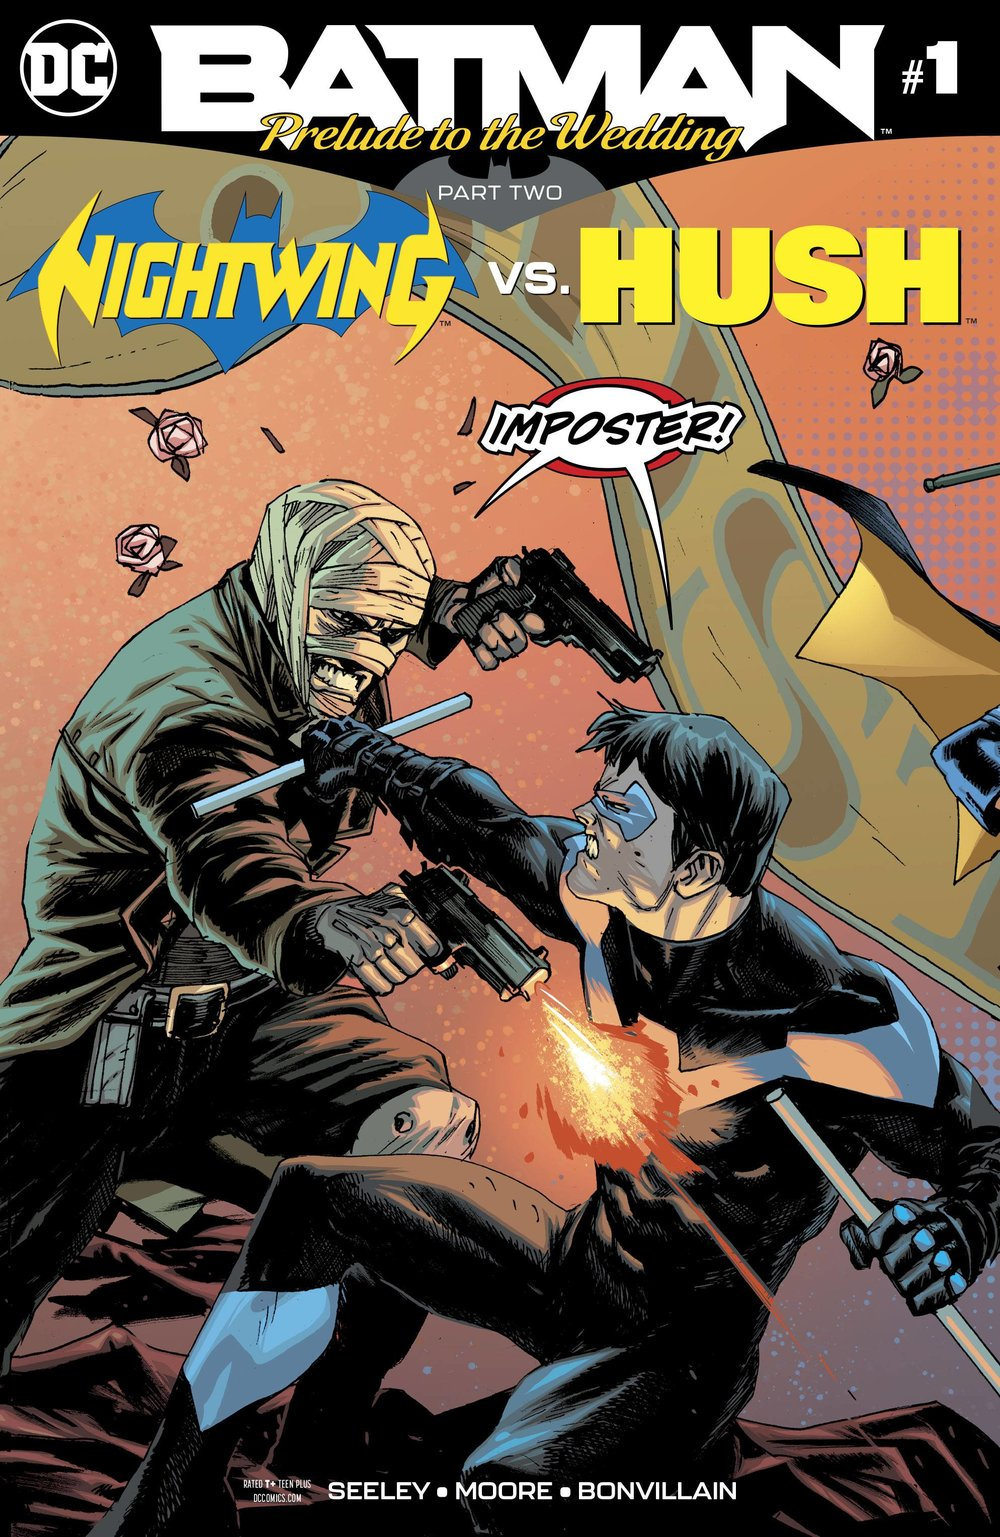 BATMAN PRELUDE TO THE WEDDING NIGHTWING VS HUSH 1.jpg